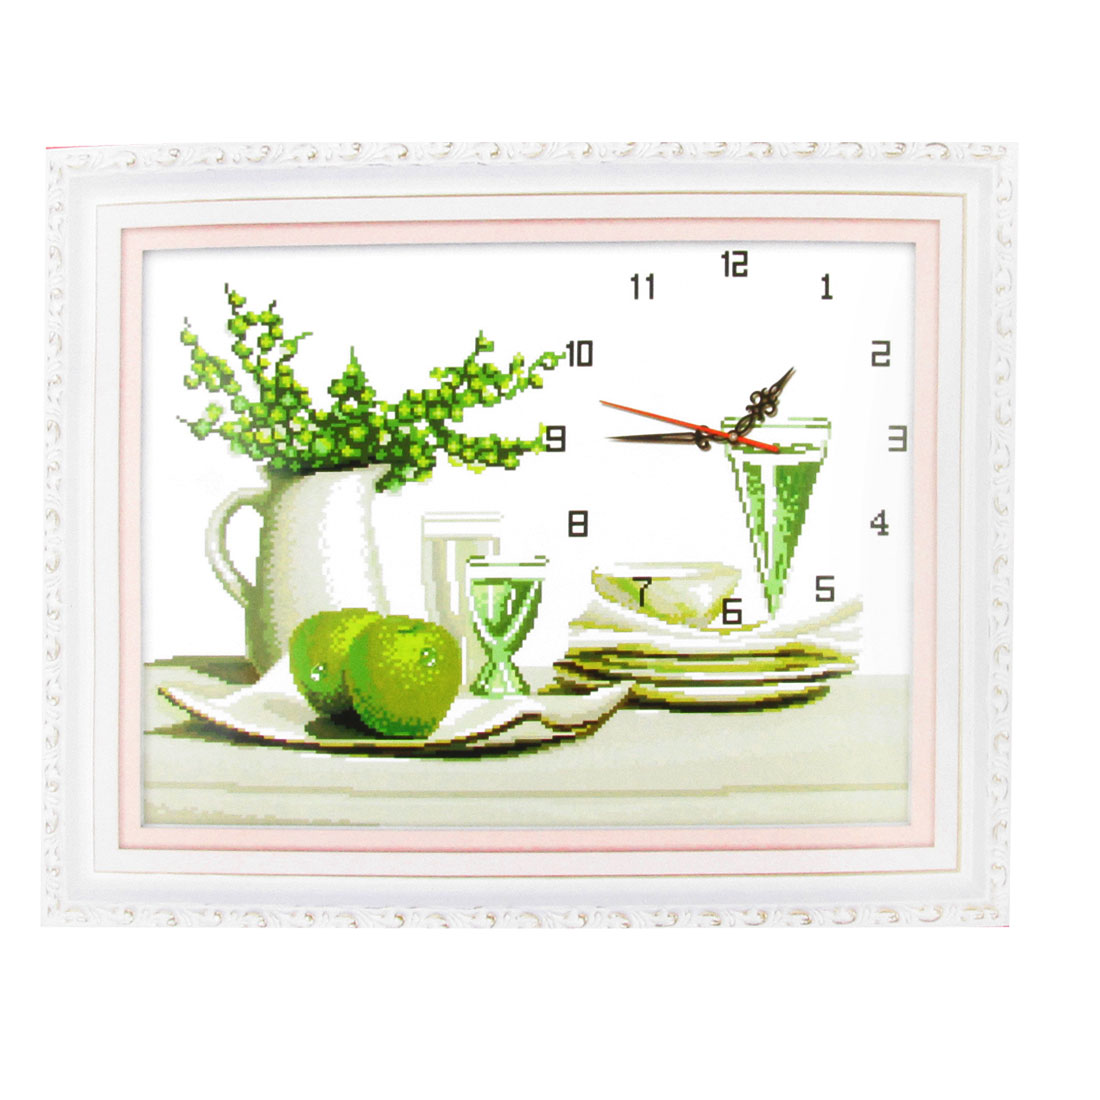 Handwork Stamped Cross Stitch Cup Flower Clock Pattern Design Counted Kit